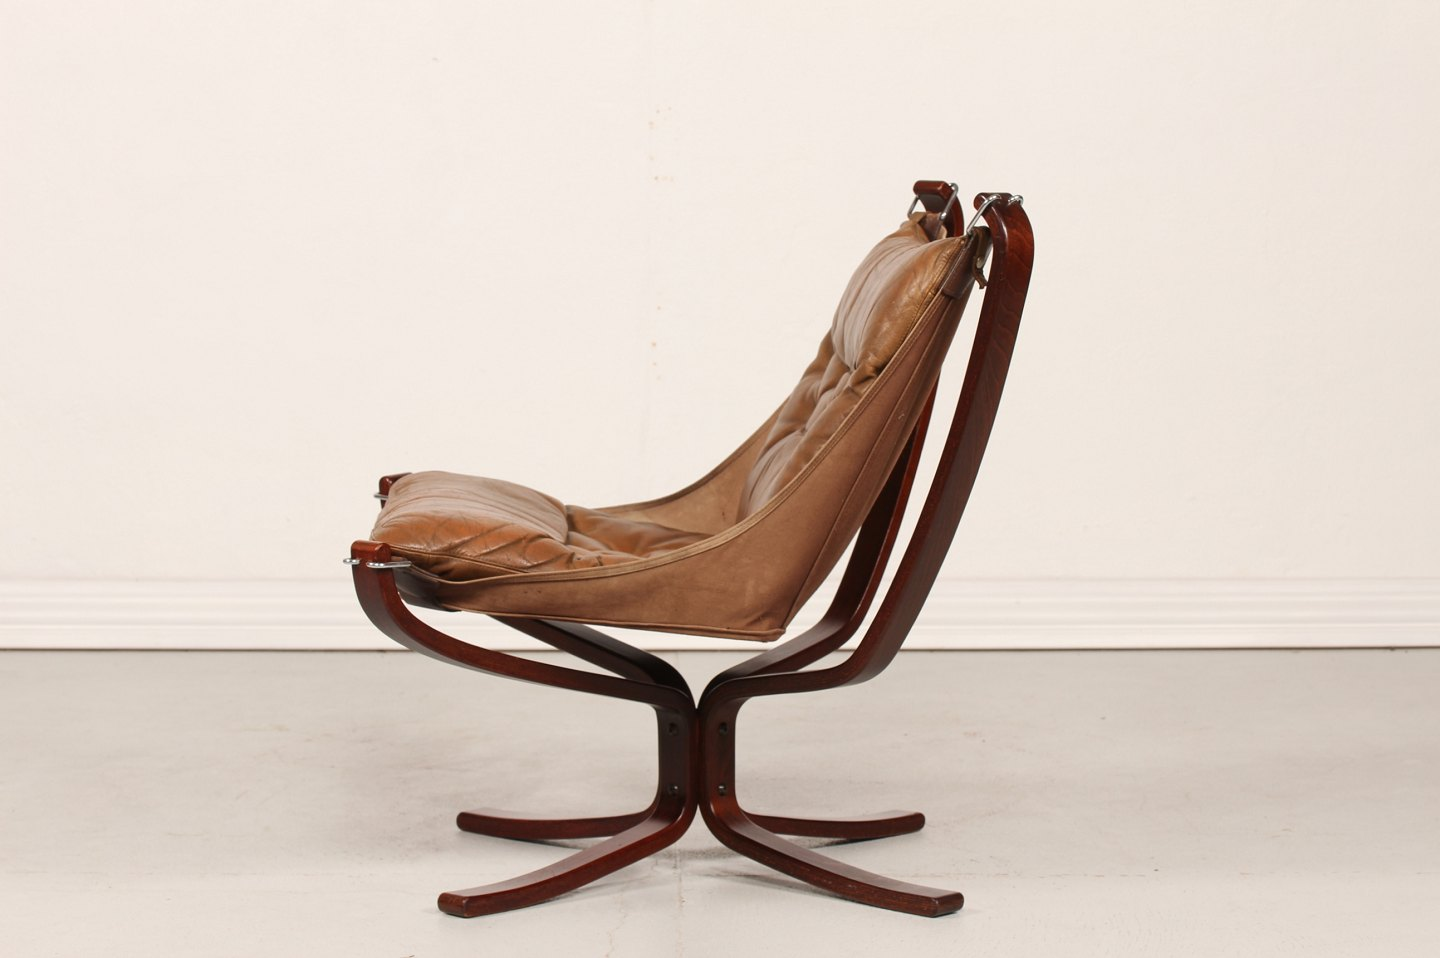 Falcon Chair Sigurd Ressell Low Falcon Chair